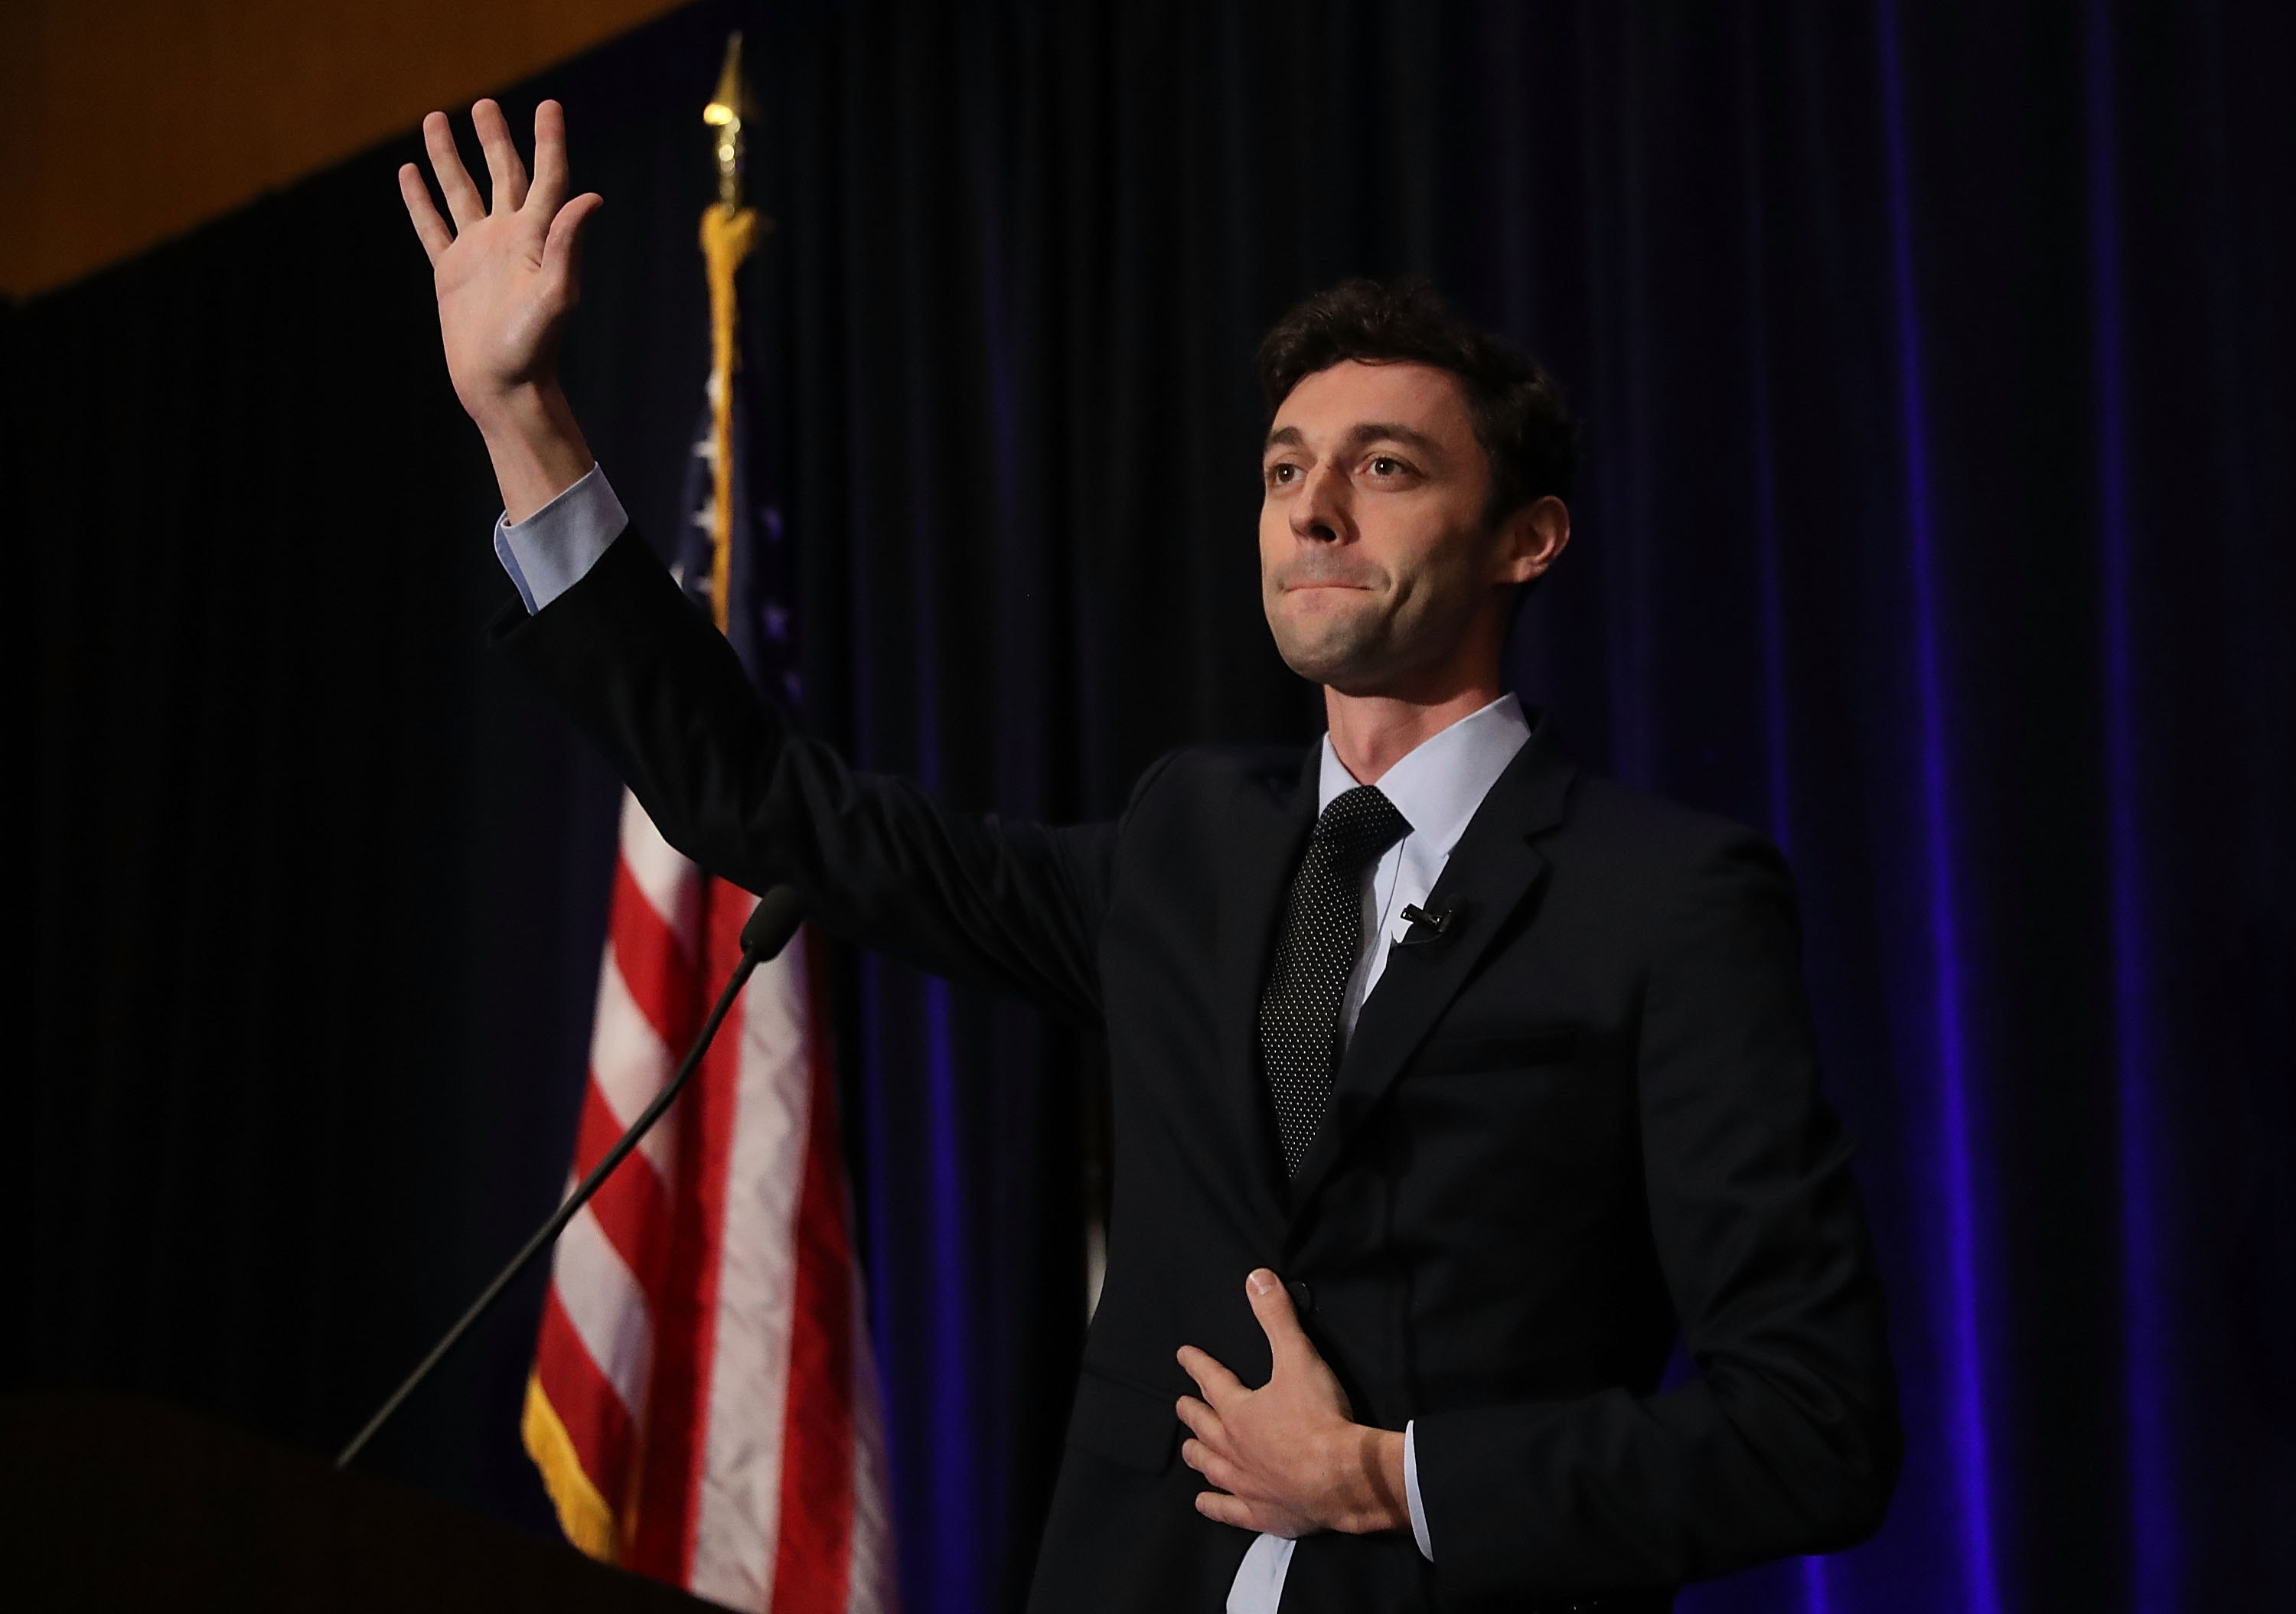 Democratic candidate Jon Ossoff had hoped to pass the 50 percent threshold to win election to former Rep. Tom Price's Congressional seat. (Getty Images)